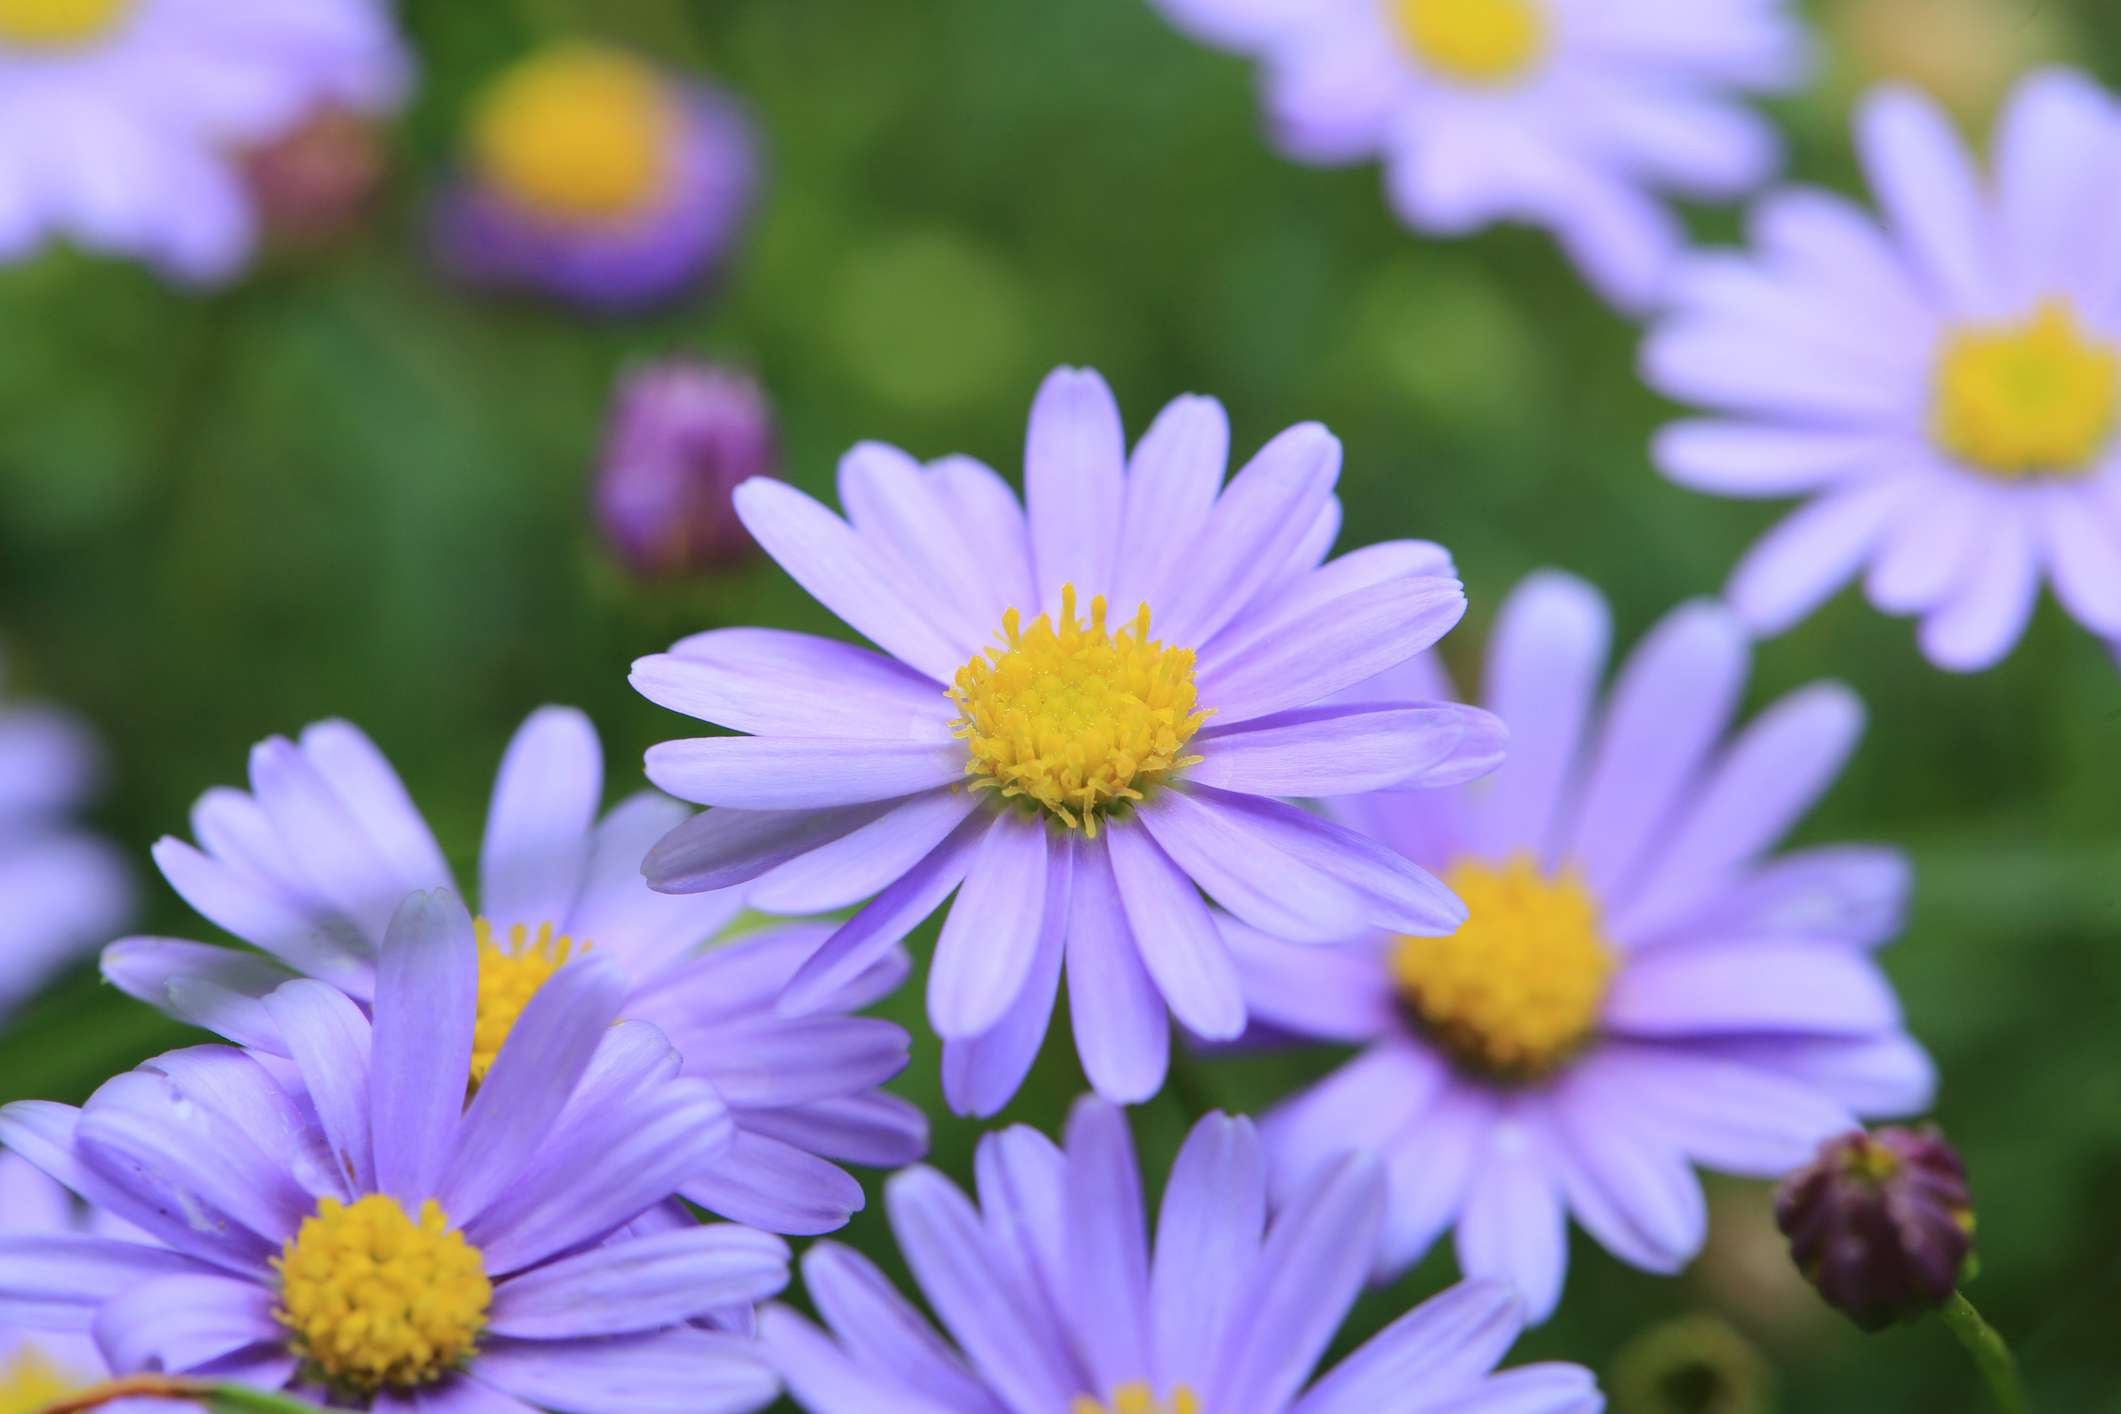 Swan River daisies with lavender petals and yellow centers